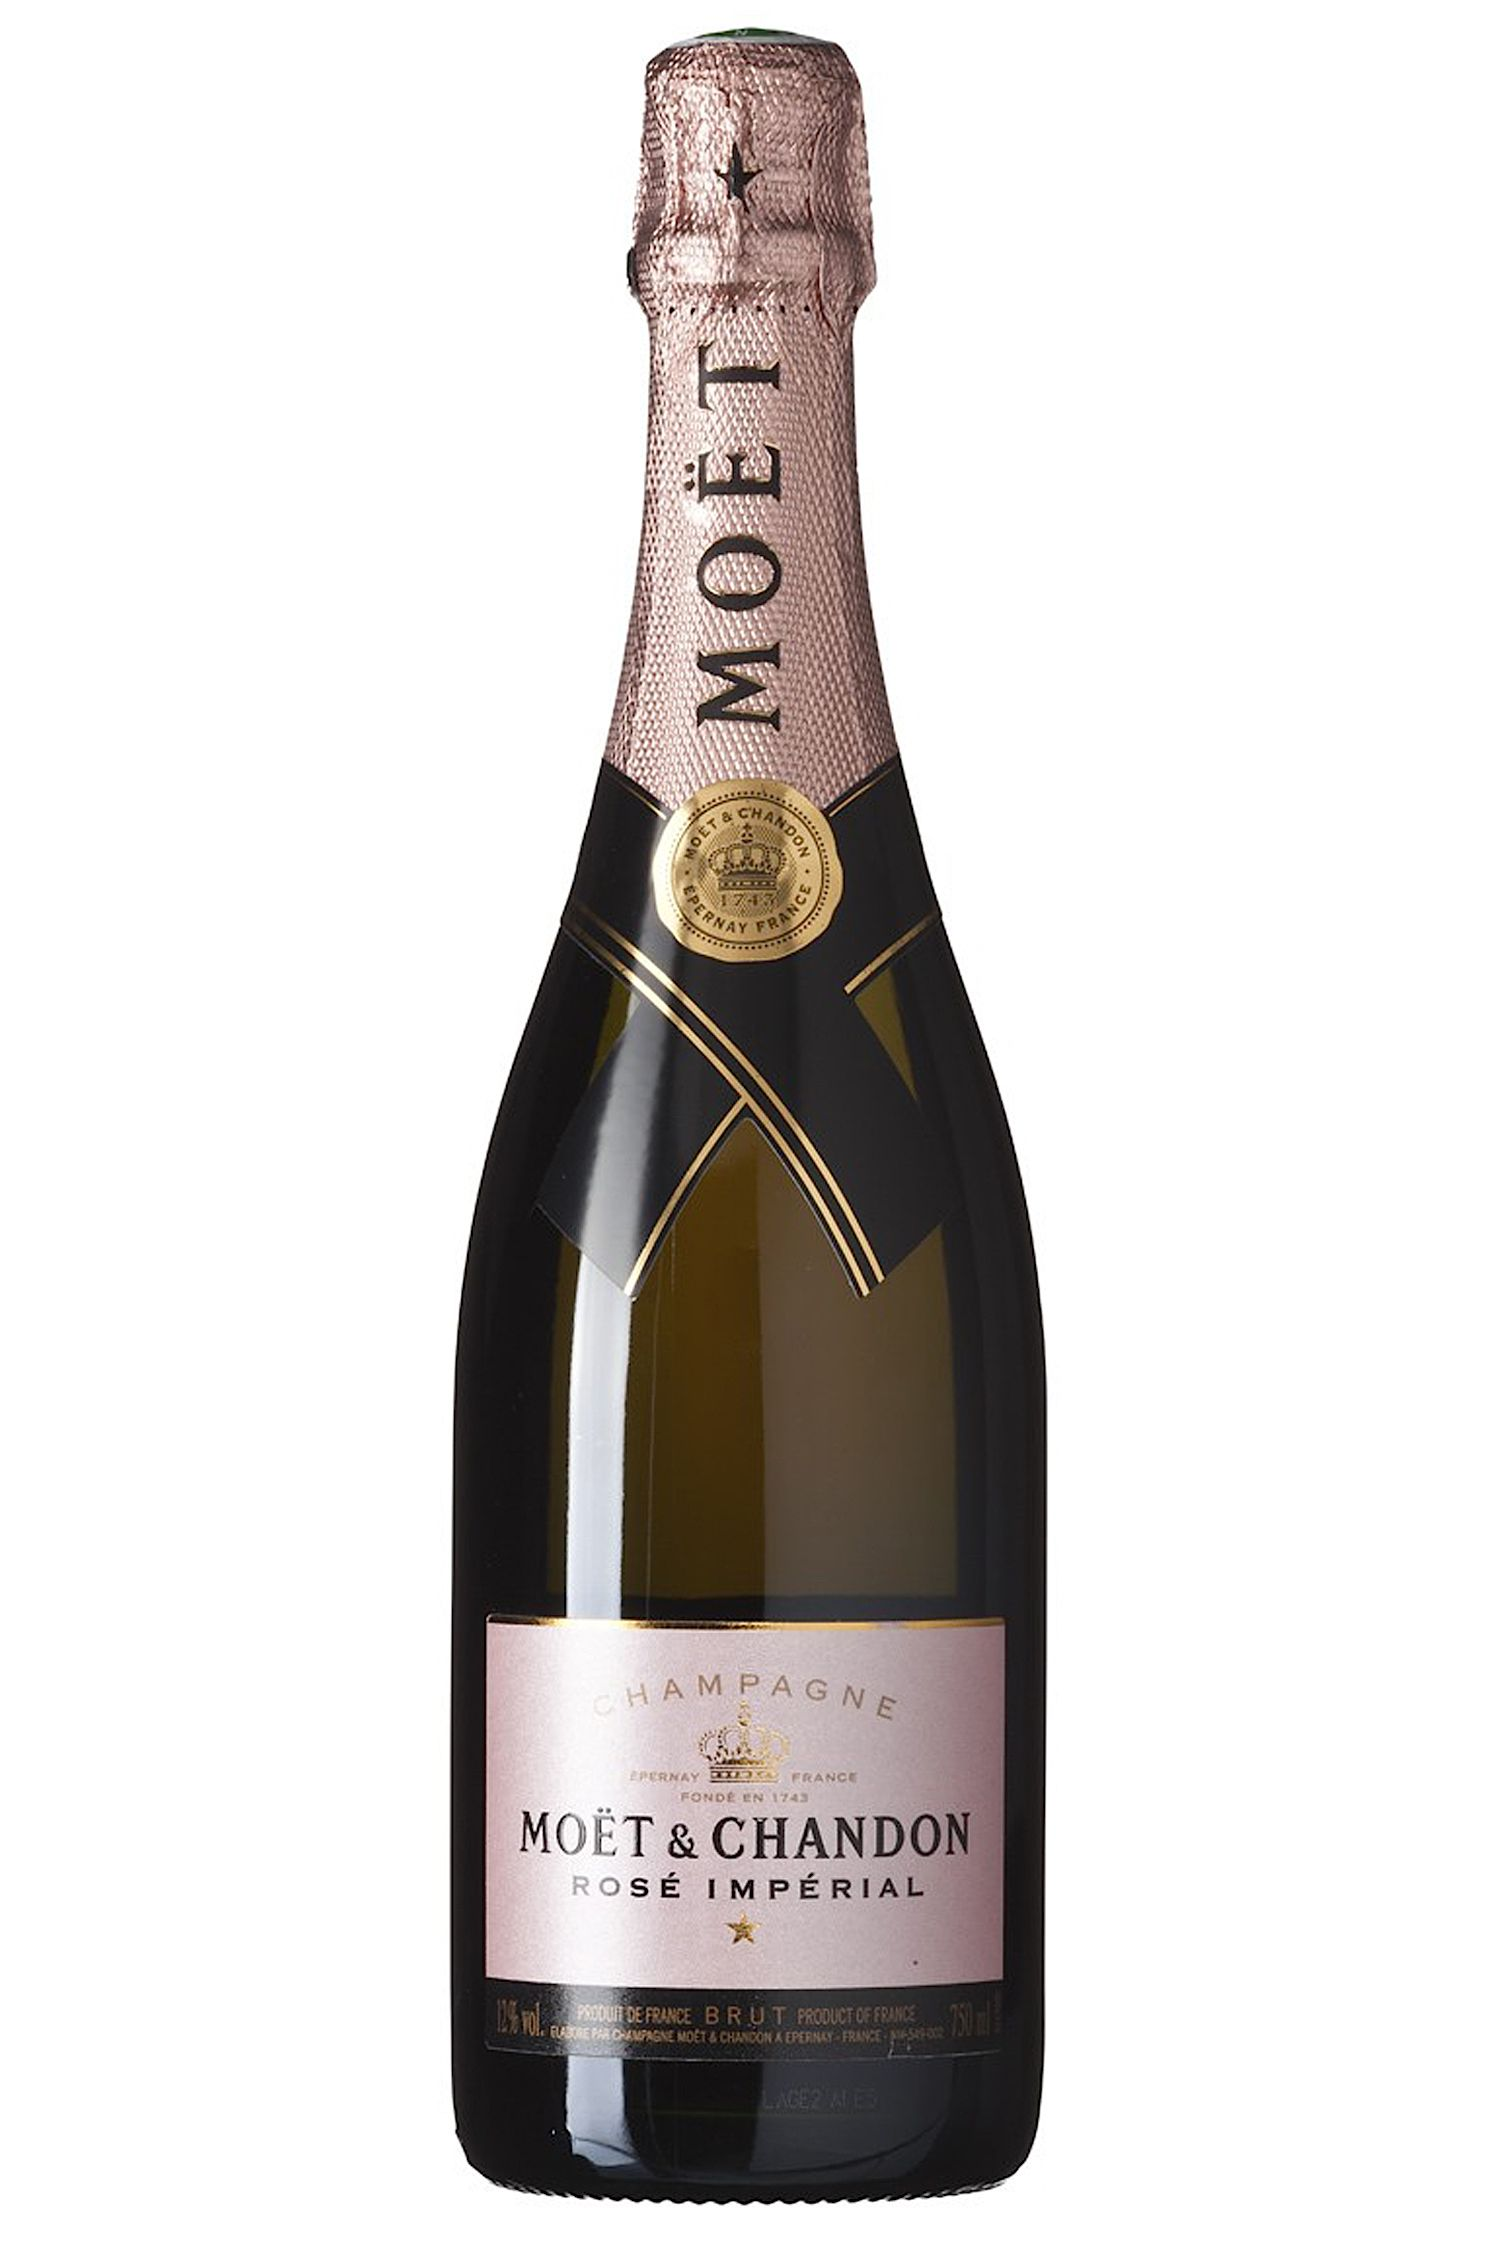 "<p><strong>The Bottle</strong>: Moët Rosé Impérial </p><p><strong>The Bar</strong>: <a href=""http://www.theplazany.com/dining/champagne-bar/"" target=""_blank"">Champagne Bar at the Plaza Hotel</a> </p><p>Rosé may be today's ultimate summer sip, but happily you don't need to part ways  post-Labor Day. Instead, venture to Midtown for a taste of old New York with a trendy twist. Here you'll find servers in white dinner jackets, an impressive caviar menu, and a definitively refined atmosphere.</p>"